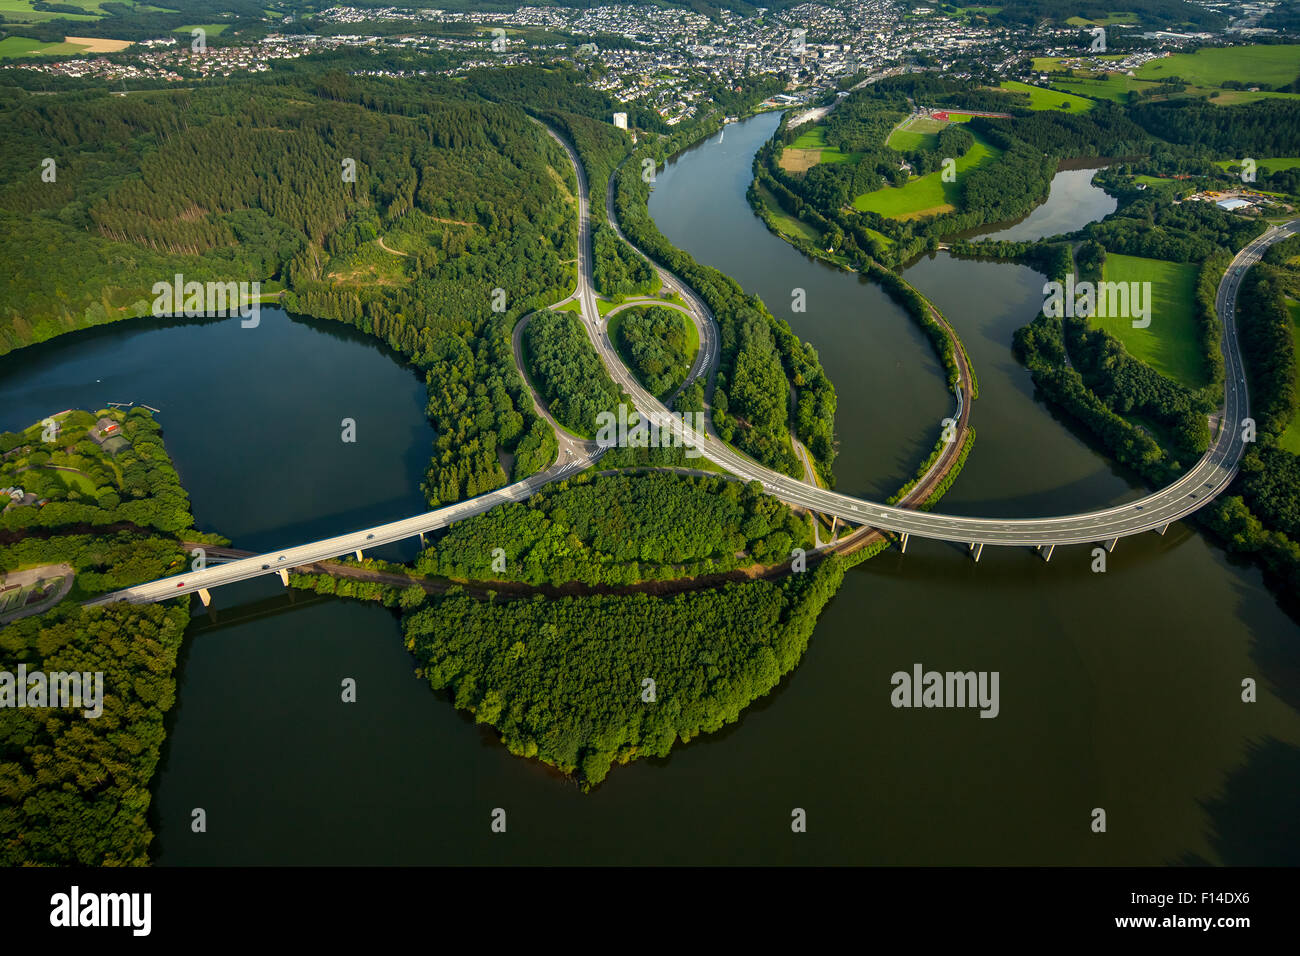 Roads B54 and B55, basin Biggetalsperre in the urban area Olpe, Bigge, Ruhr District, Sauerland, North Rhine-Westphalia, - Stock Image